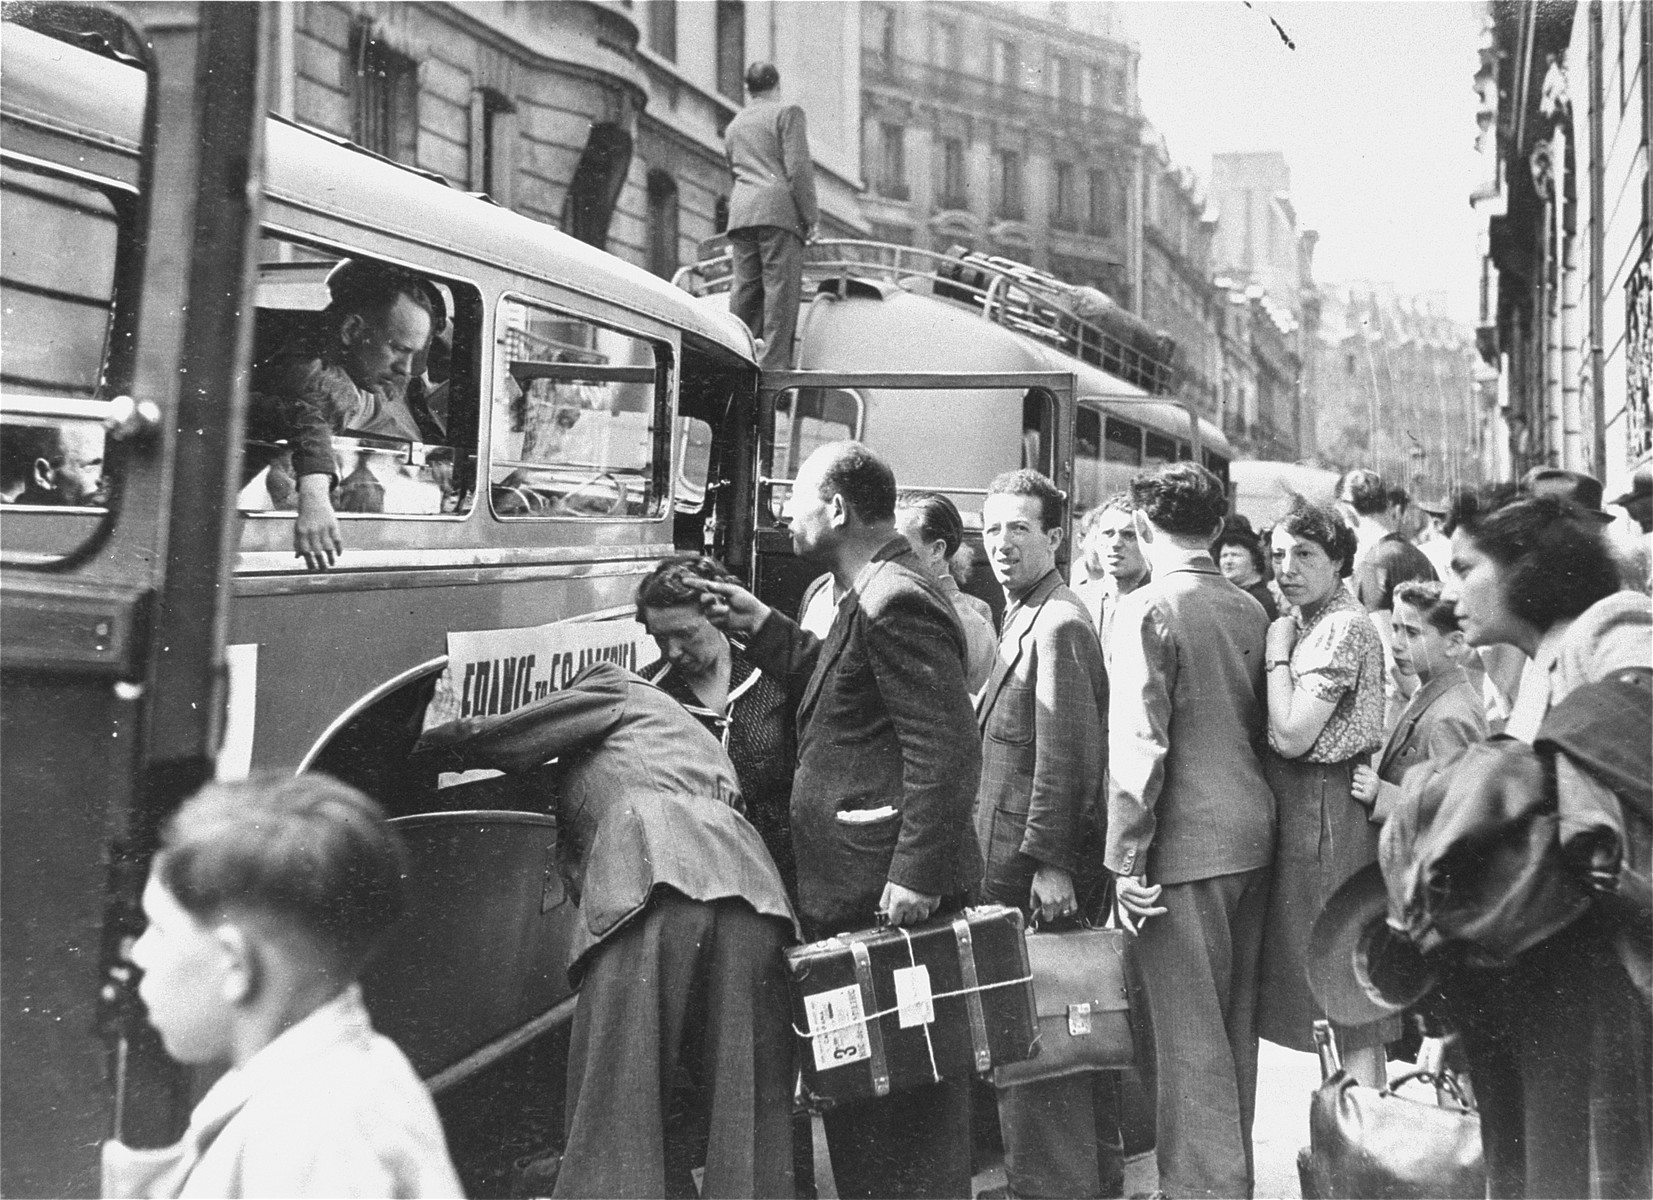 Jewish DPs wait in line on a street in Paris to board a convoy of buses that will transport them to Marseilles, on the first leg of their journey to new homes in South America and Australia.